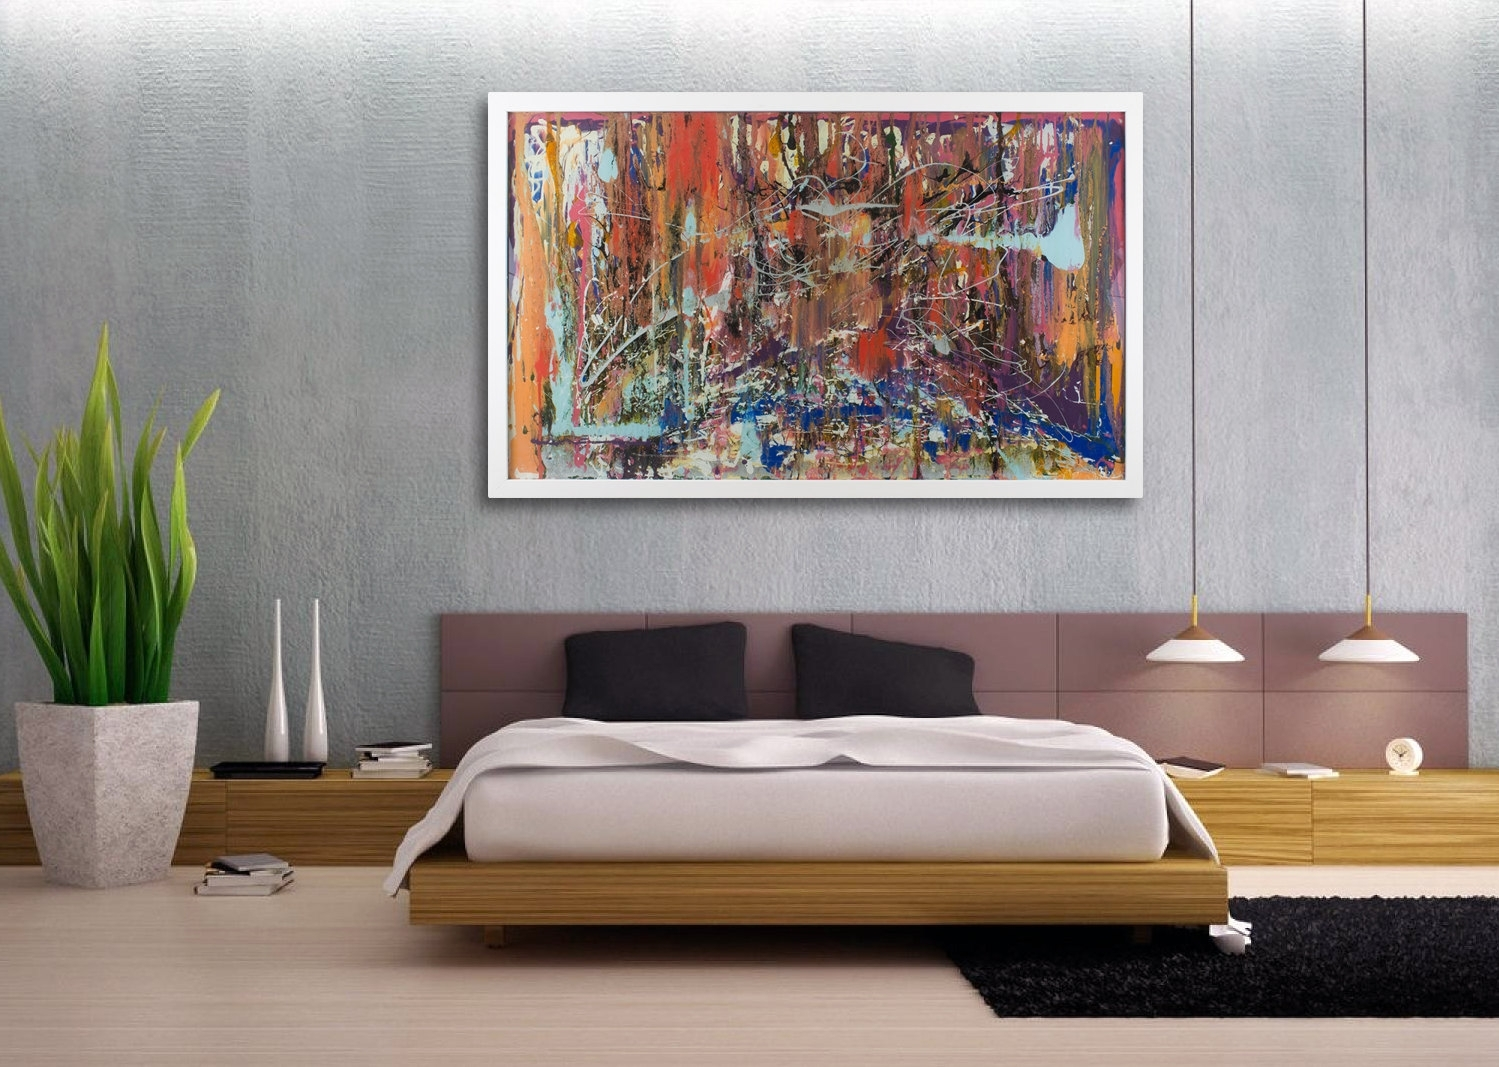 Expensive Large Canvas Wall Art Bedroom — Joanne Russo Homesjoanne Regarding Most Popular Embellished Canvas Wall Art (View 8 of 15)